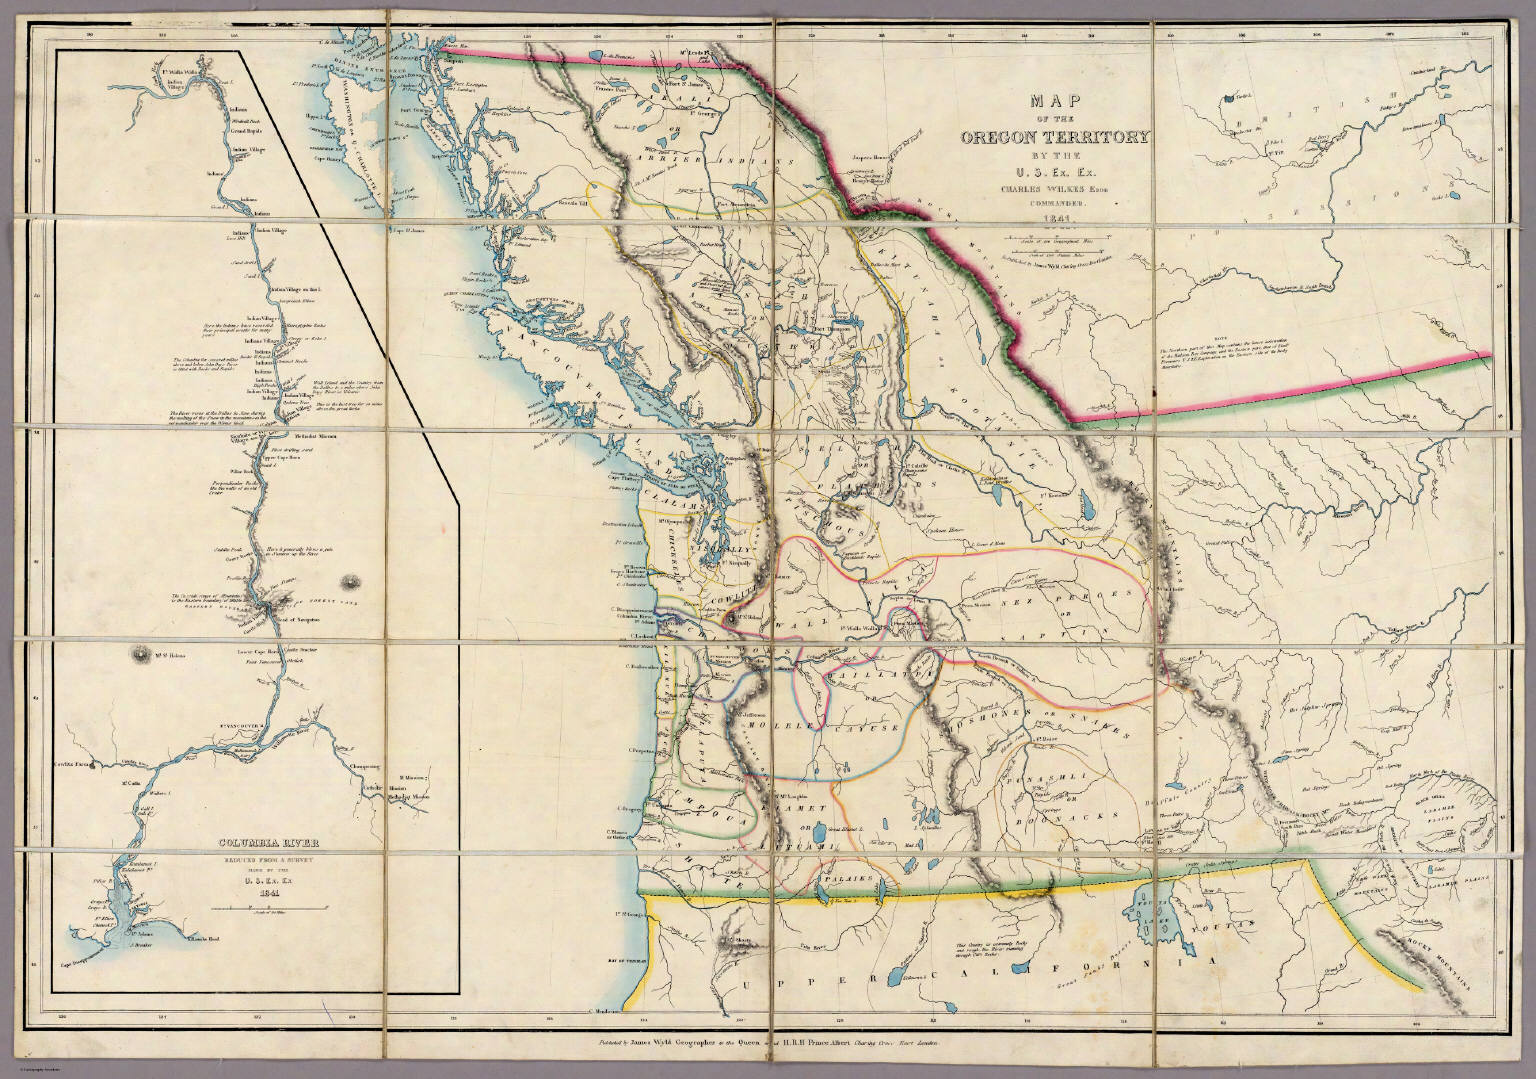 Map Of The Oregon Territory David Rumsey Historical Map Collection - Oregon map us